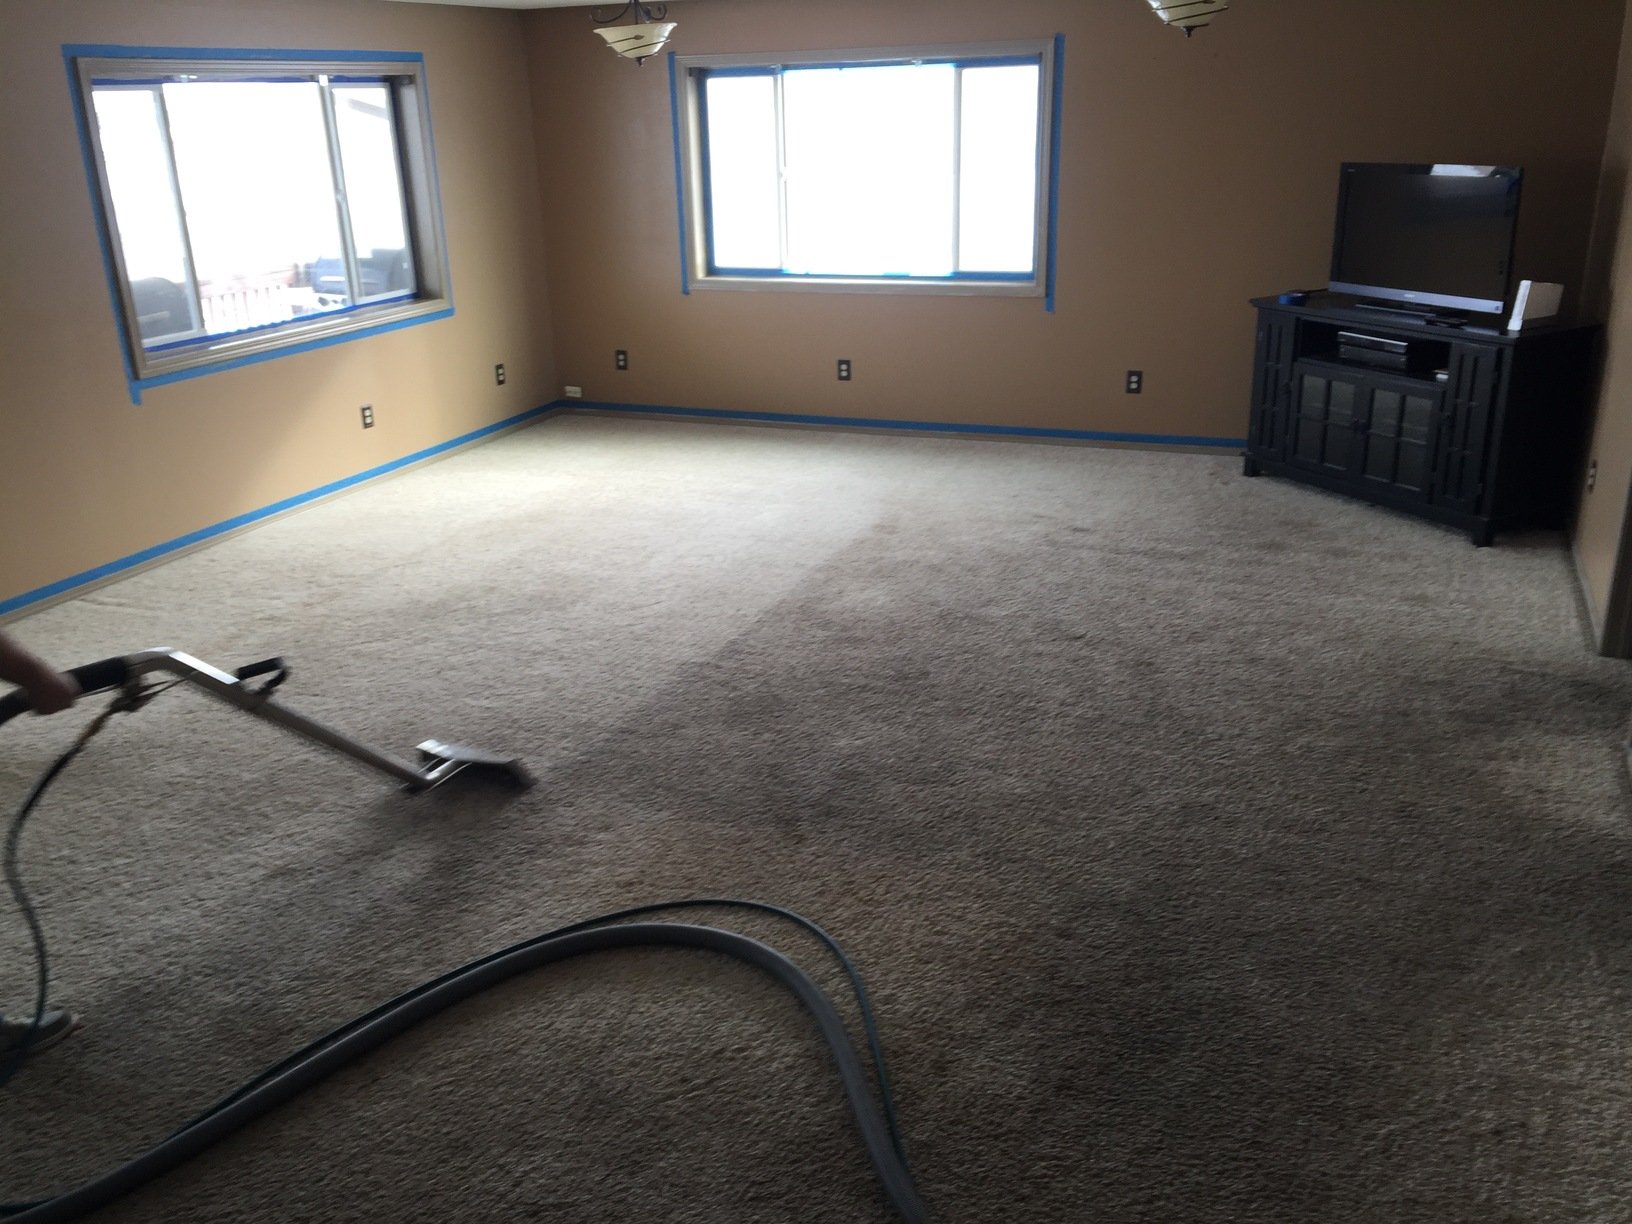 Gallery Xtreme Carpet Cleaning Amp Restoration